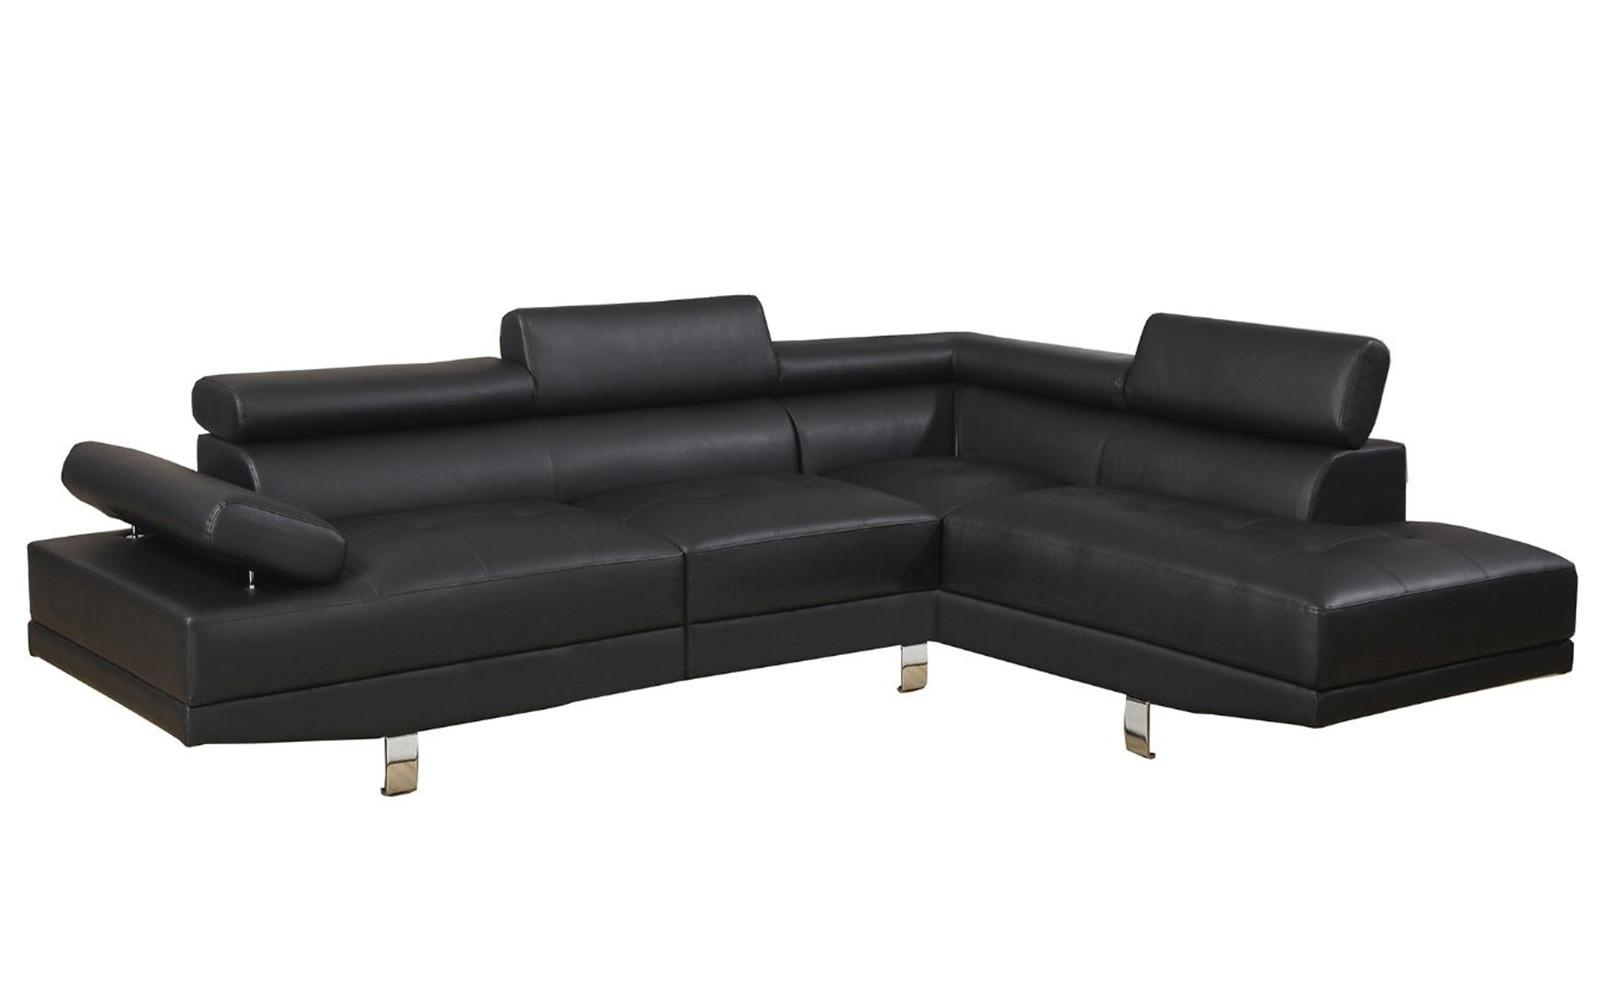 2 Piece Modern Bonded Leather Right Facing Chaise Sectional Sofa Within Sectional Sofa With 2 Chaises (Image 3 of 20)